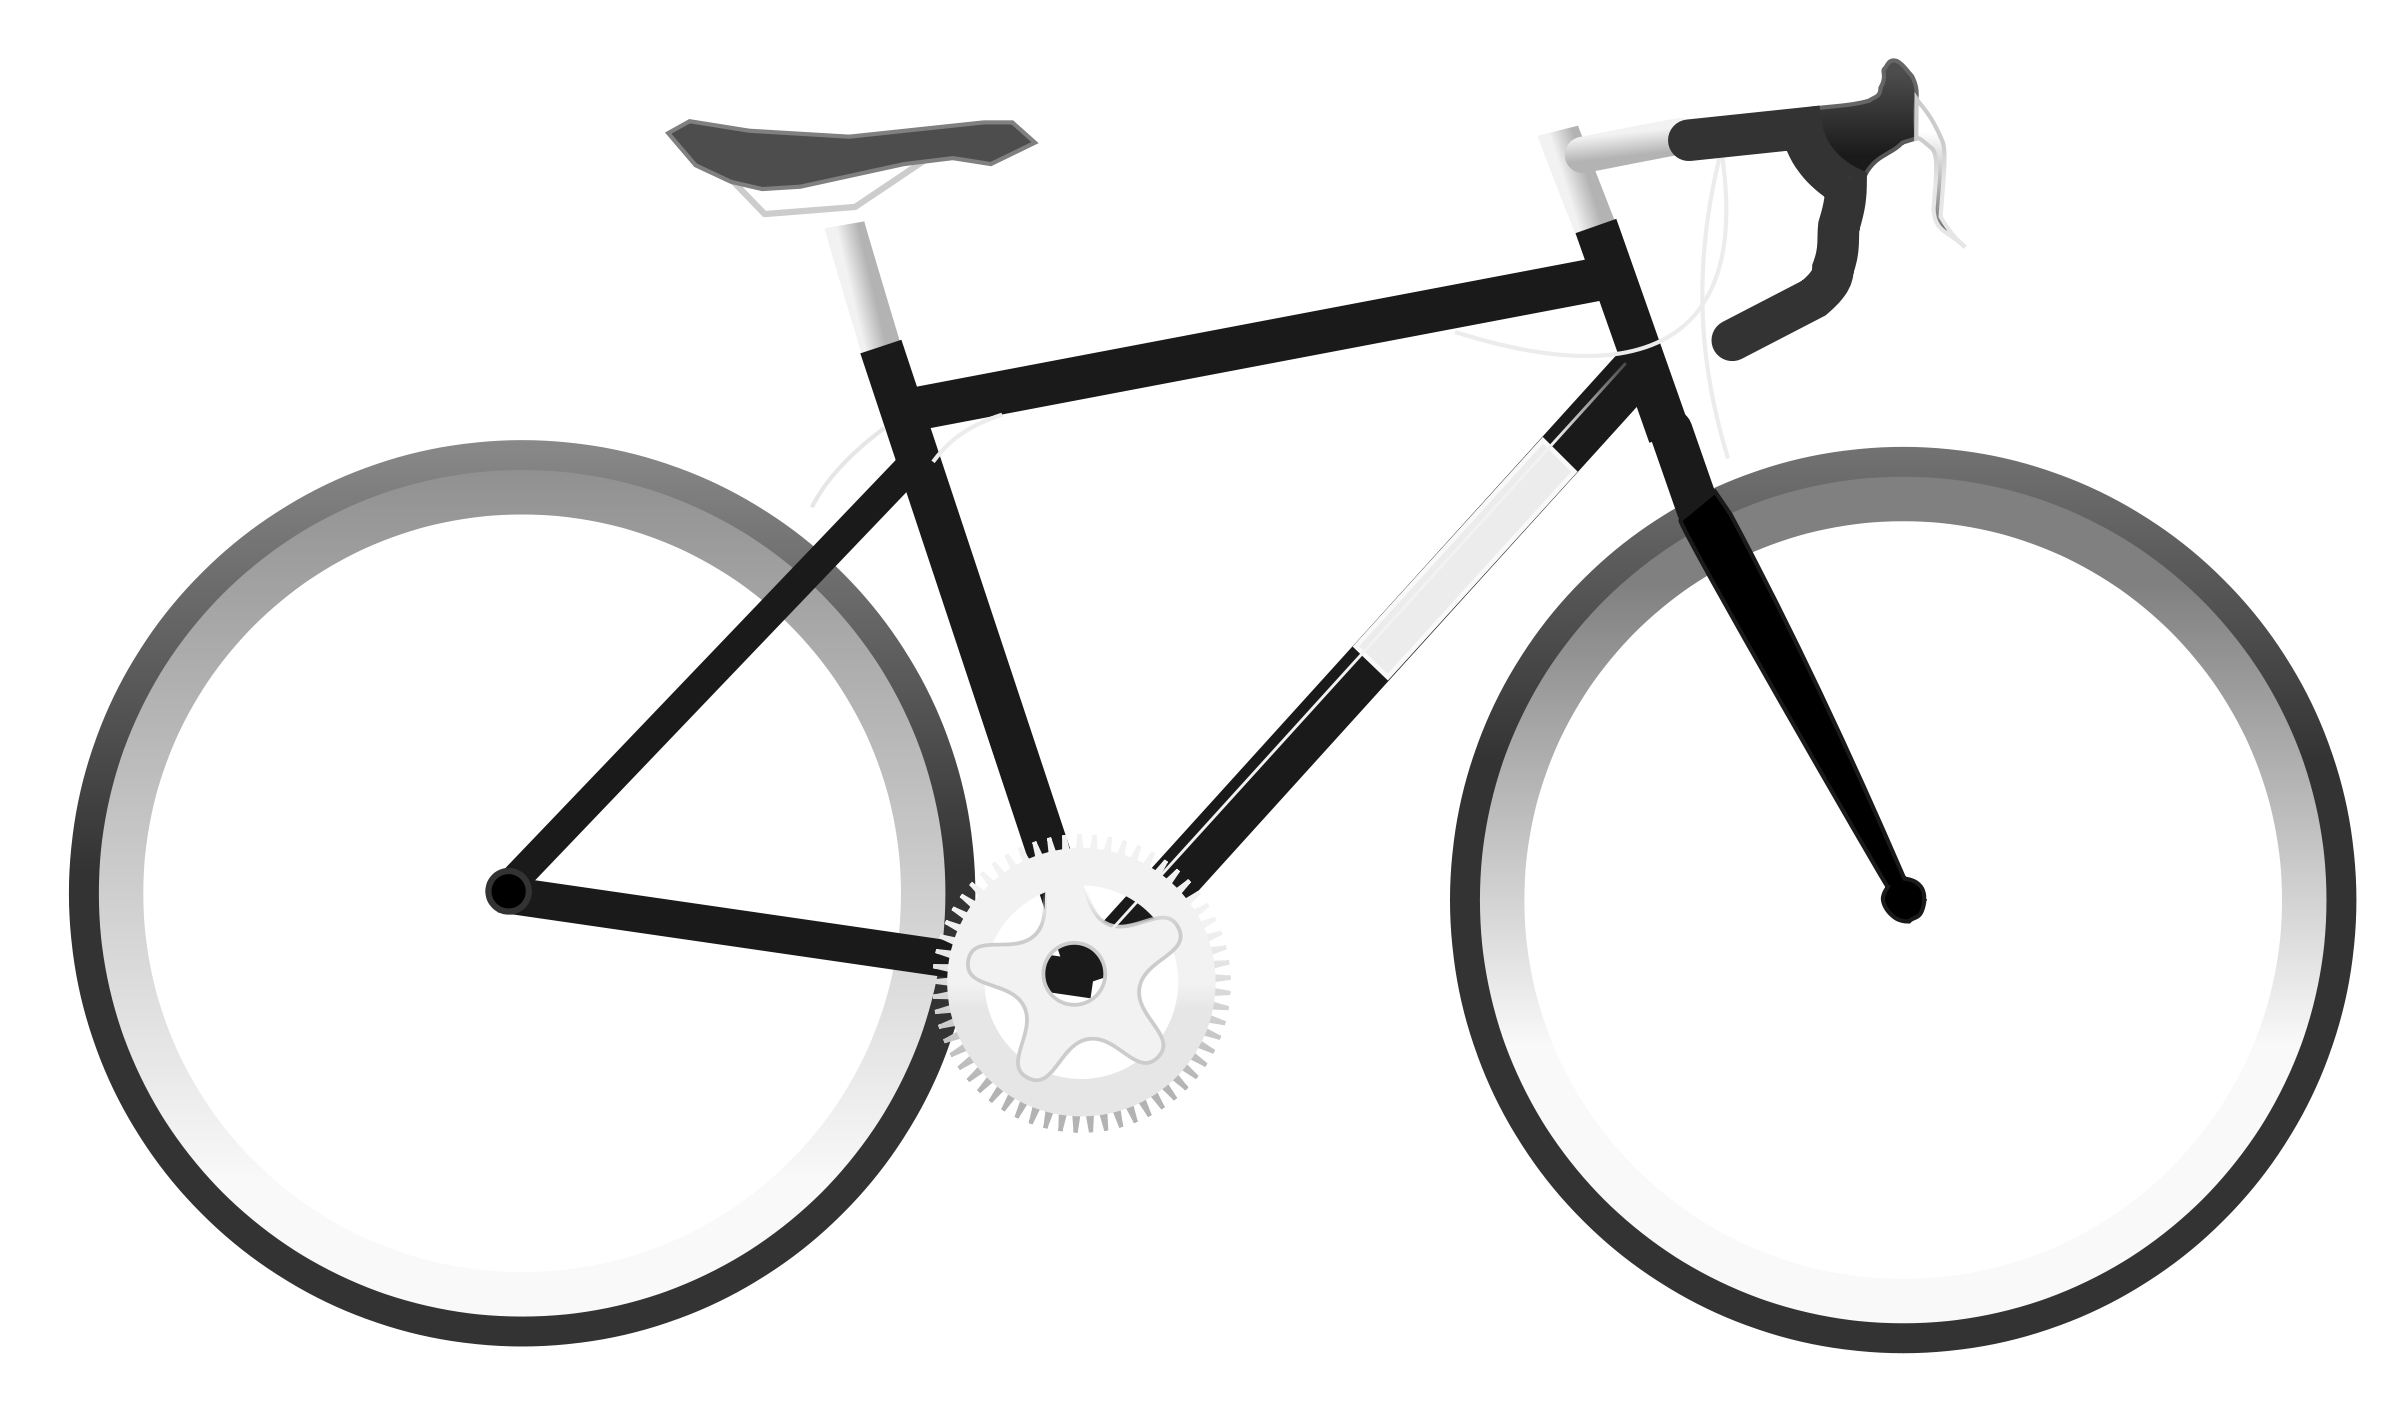 2400x1410 Bike Free Bicycle Clip Art Vector For Download About 2 5